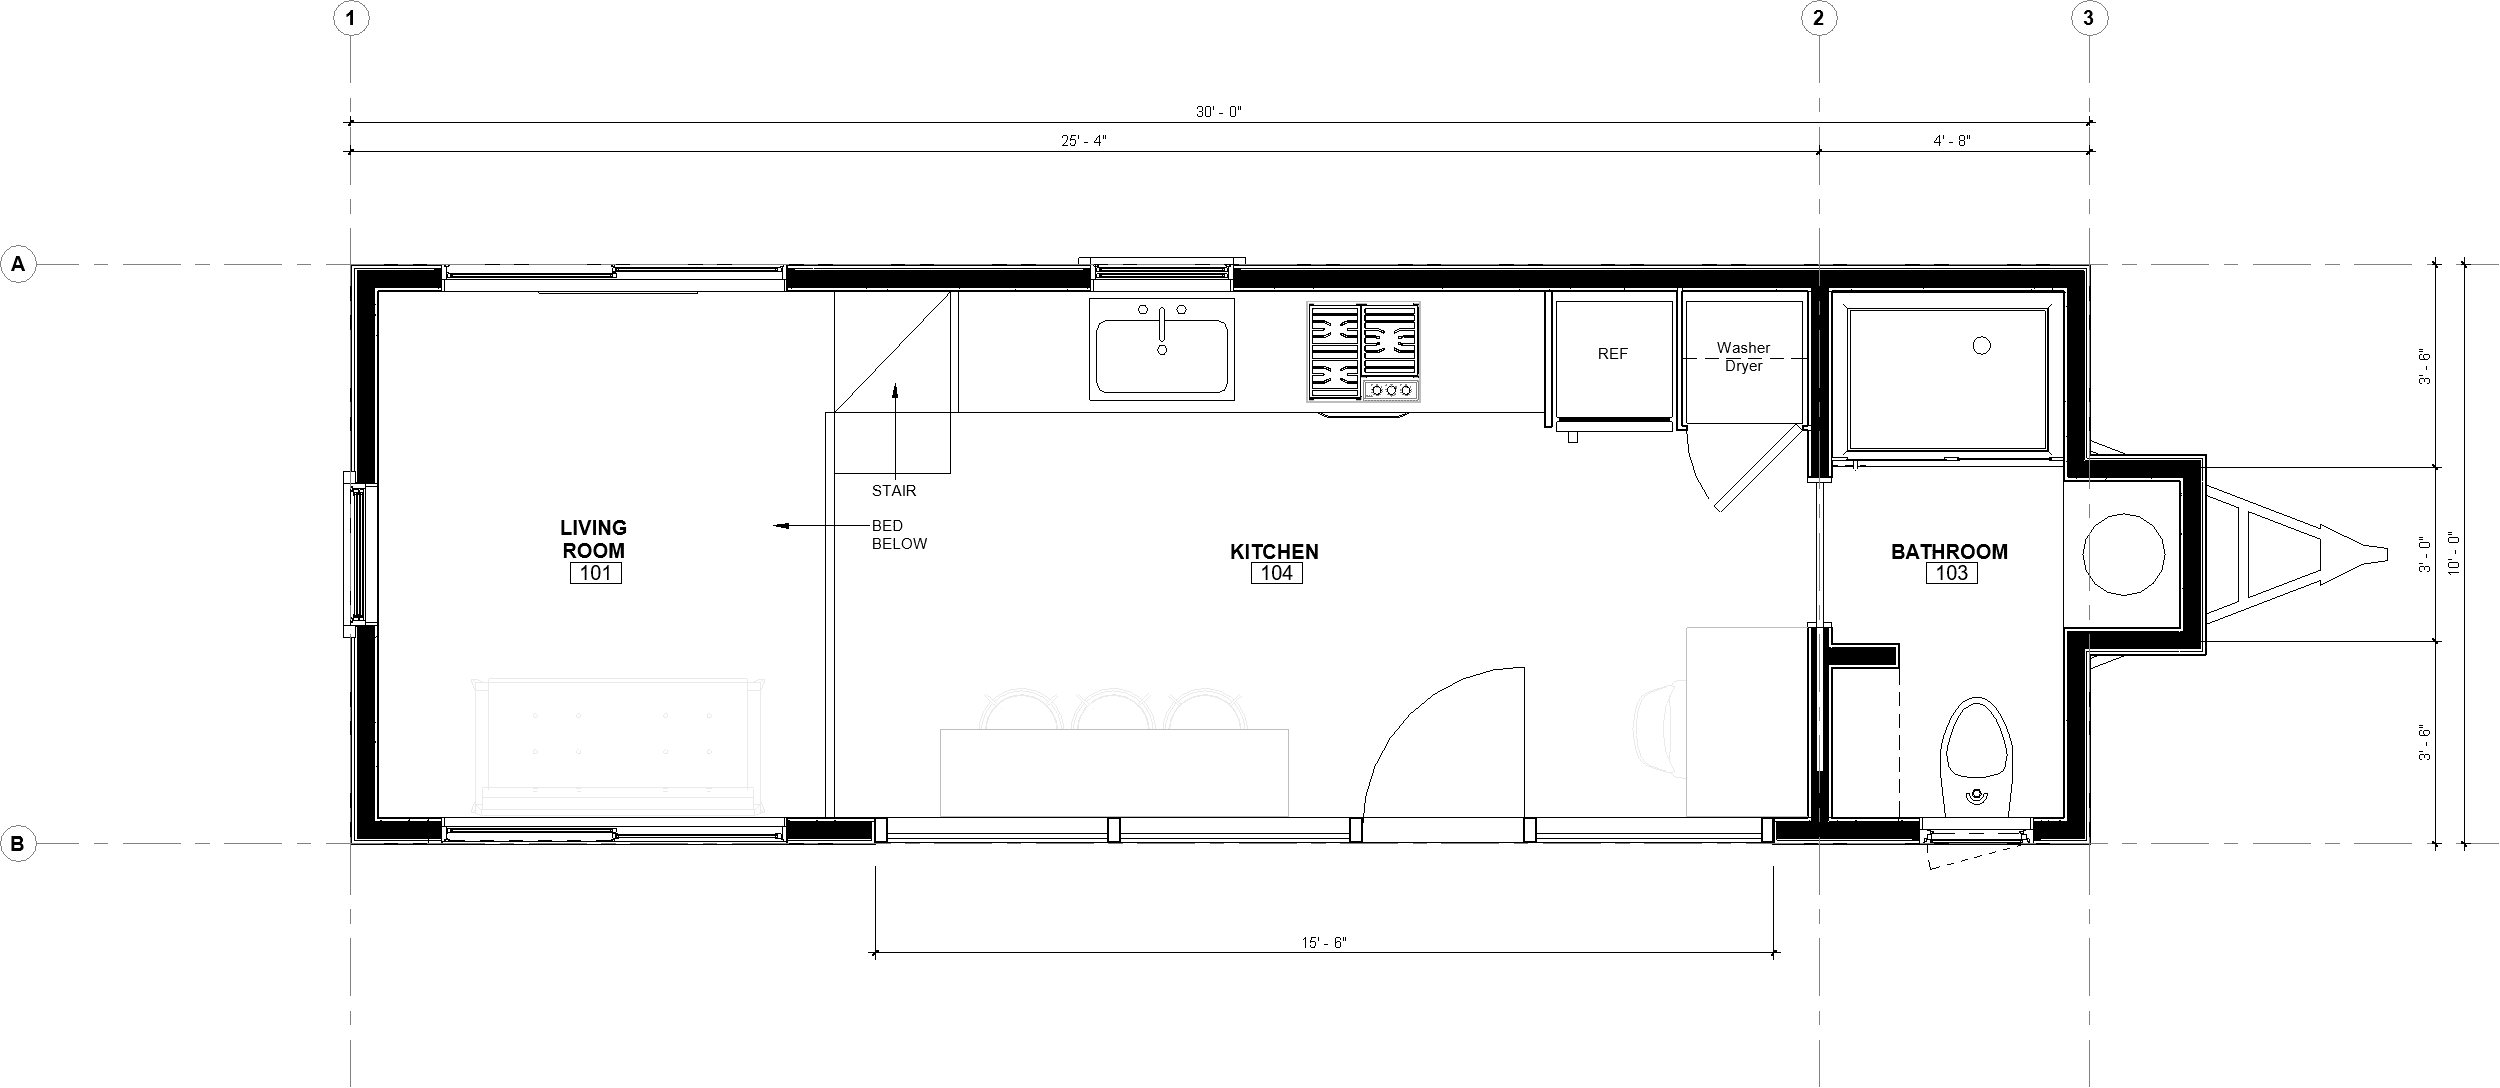 30ft Reverse Loft Pingora floor plan with dimensions